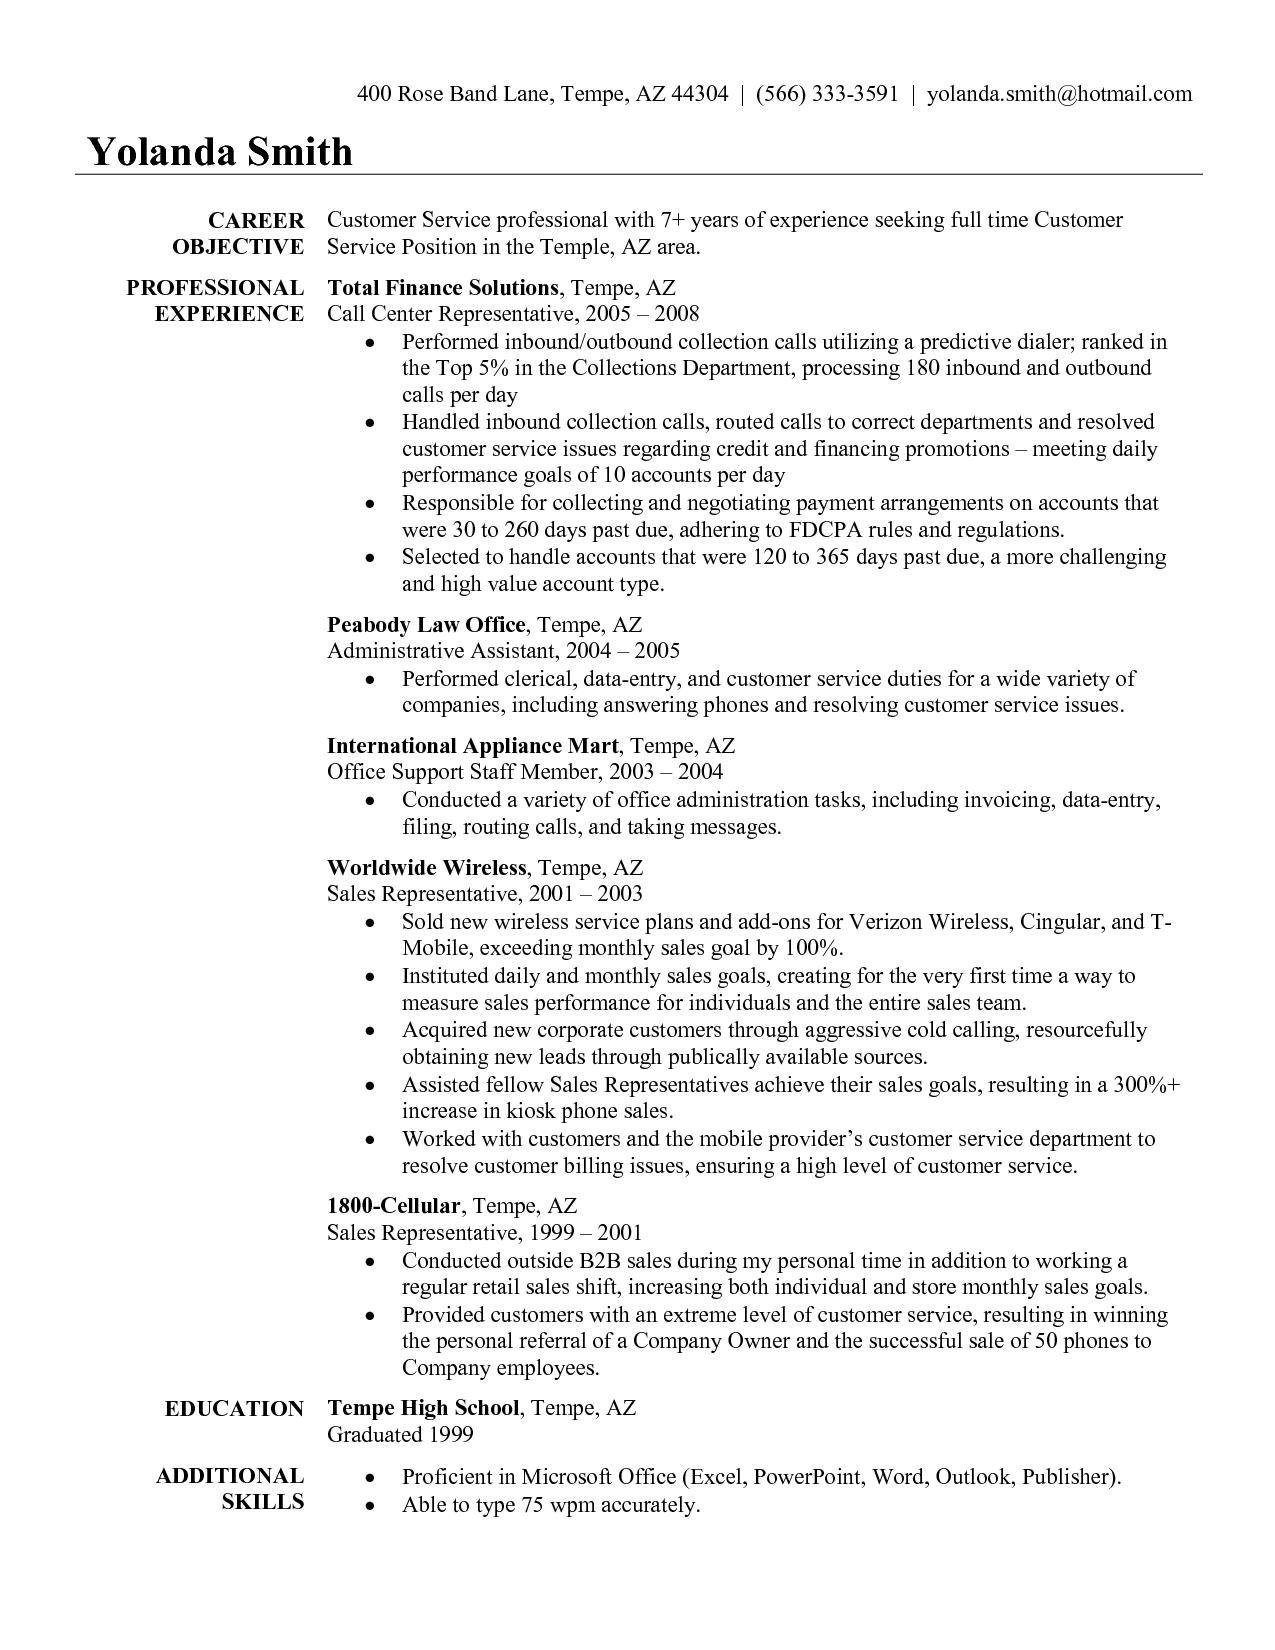 Traffic Customer Resume Examplescustomer service resume examples – Resume for Customer Service